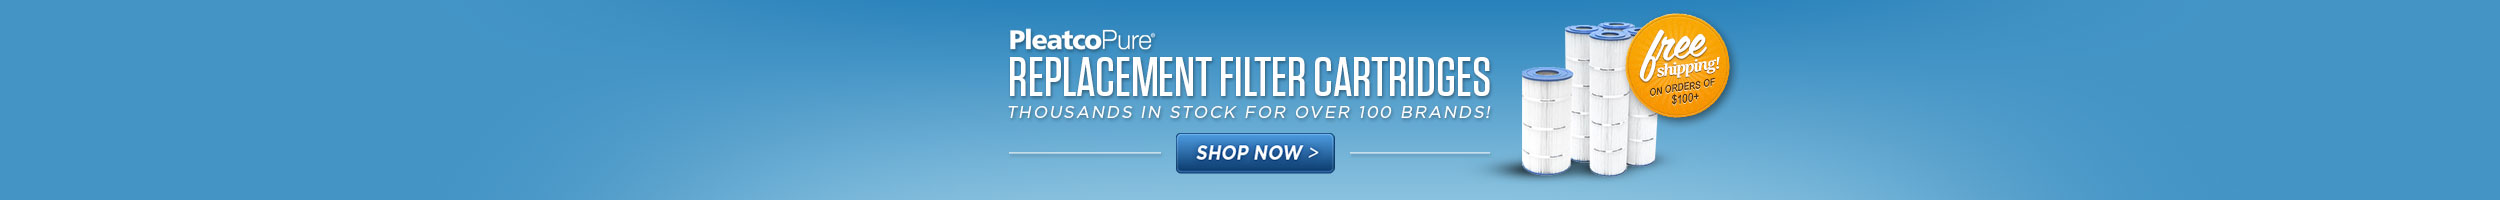 Pleatco Replacement Filter Cartridges